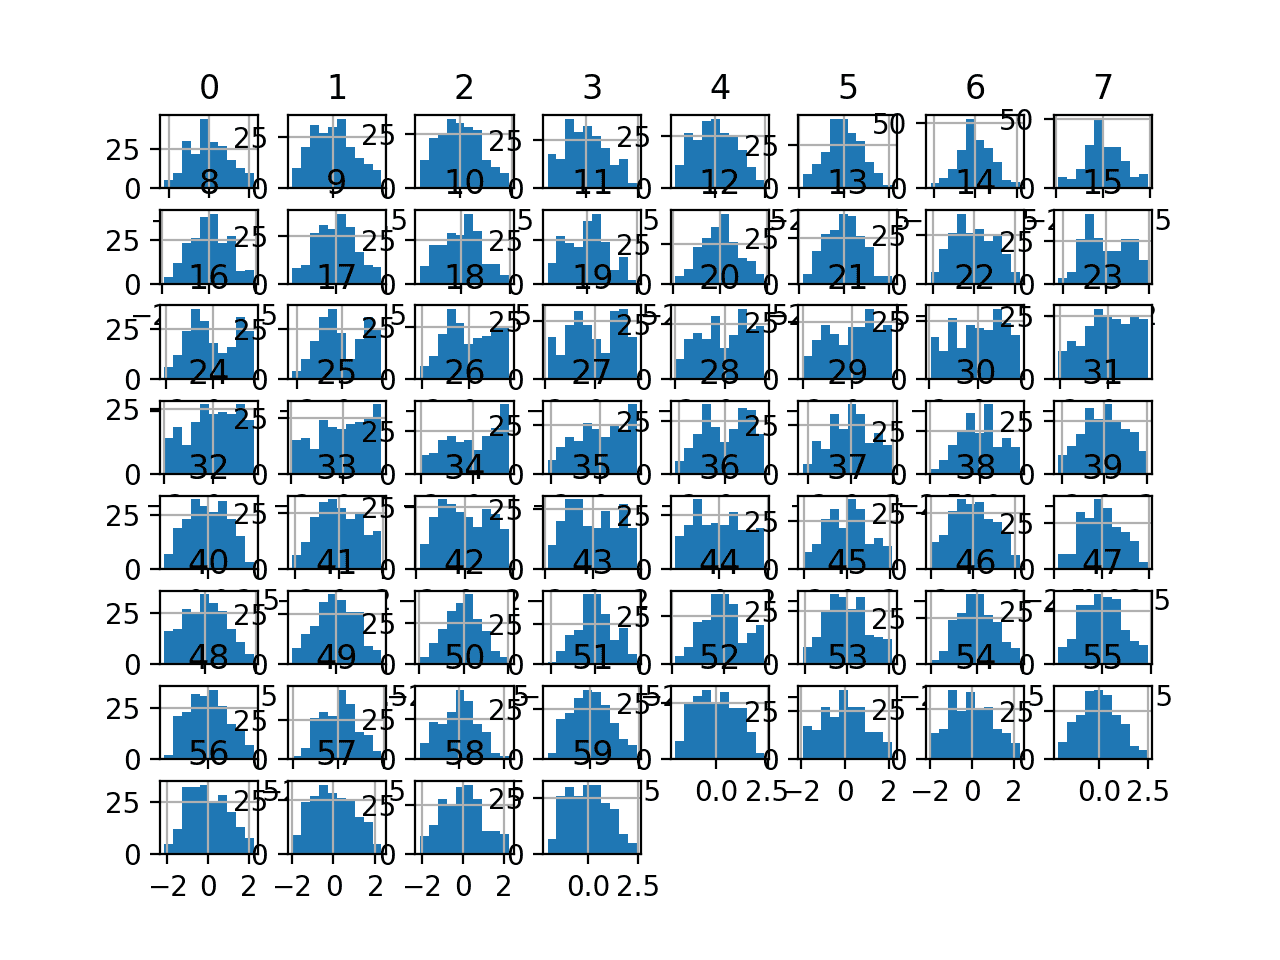 Histogram Plots of Yeo-Johnson Transformed Input Variables for the Sonar Dataset